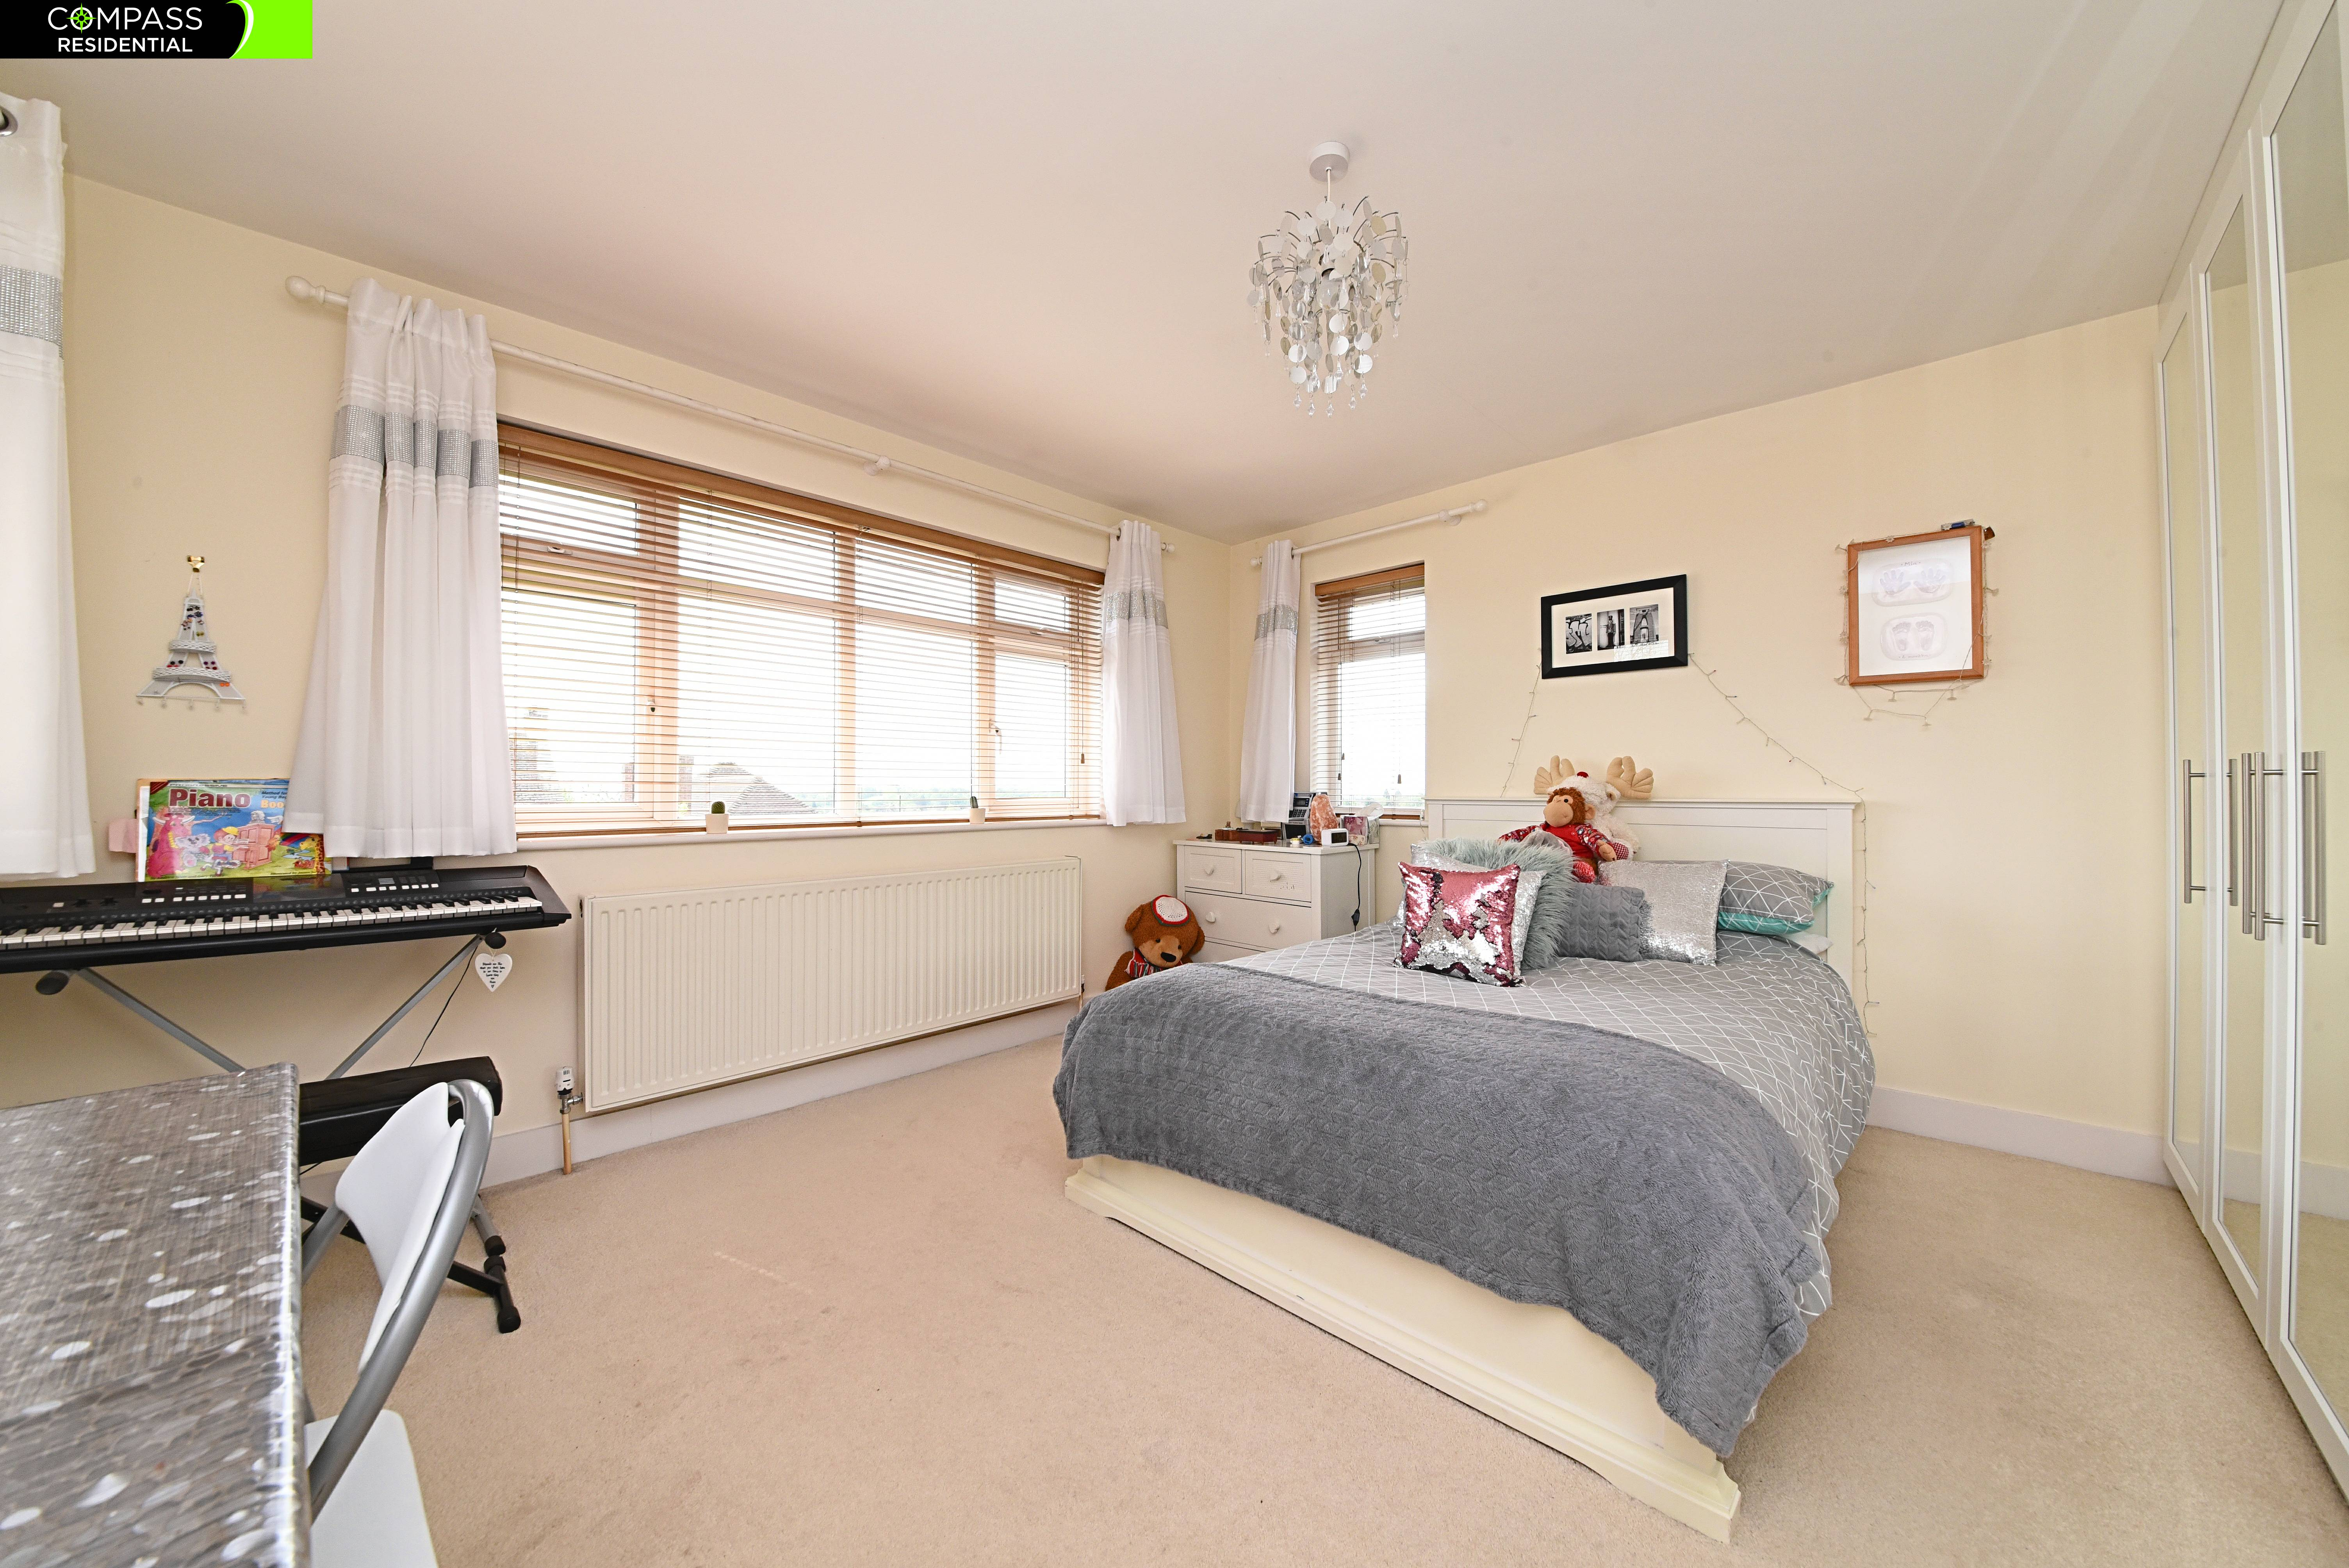 4 bed house for sale in Stanmore, HA7 3AZ 6